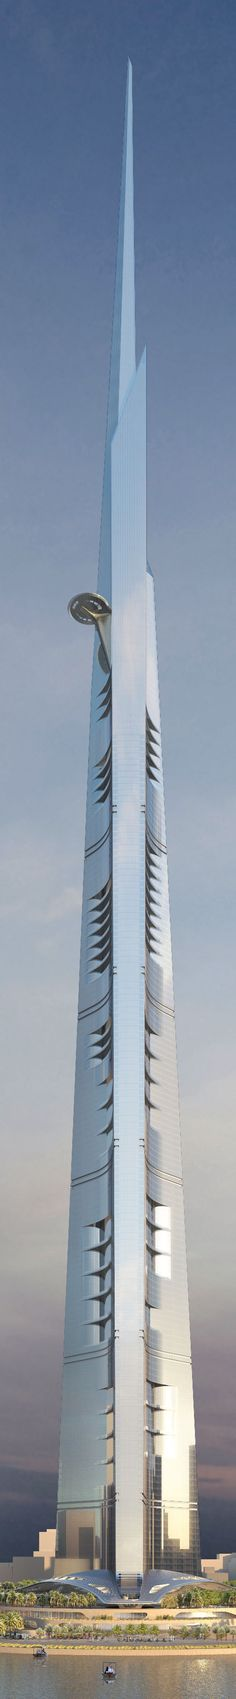 Kingdom Tower would surpass the Burj Khalifa by about 173 meters - Adrian Smith + Gordon Gill Architecture (for both building s)